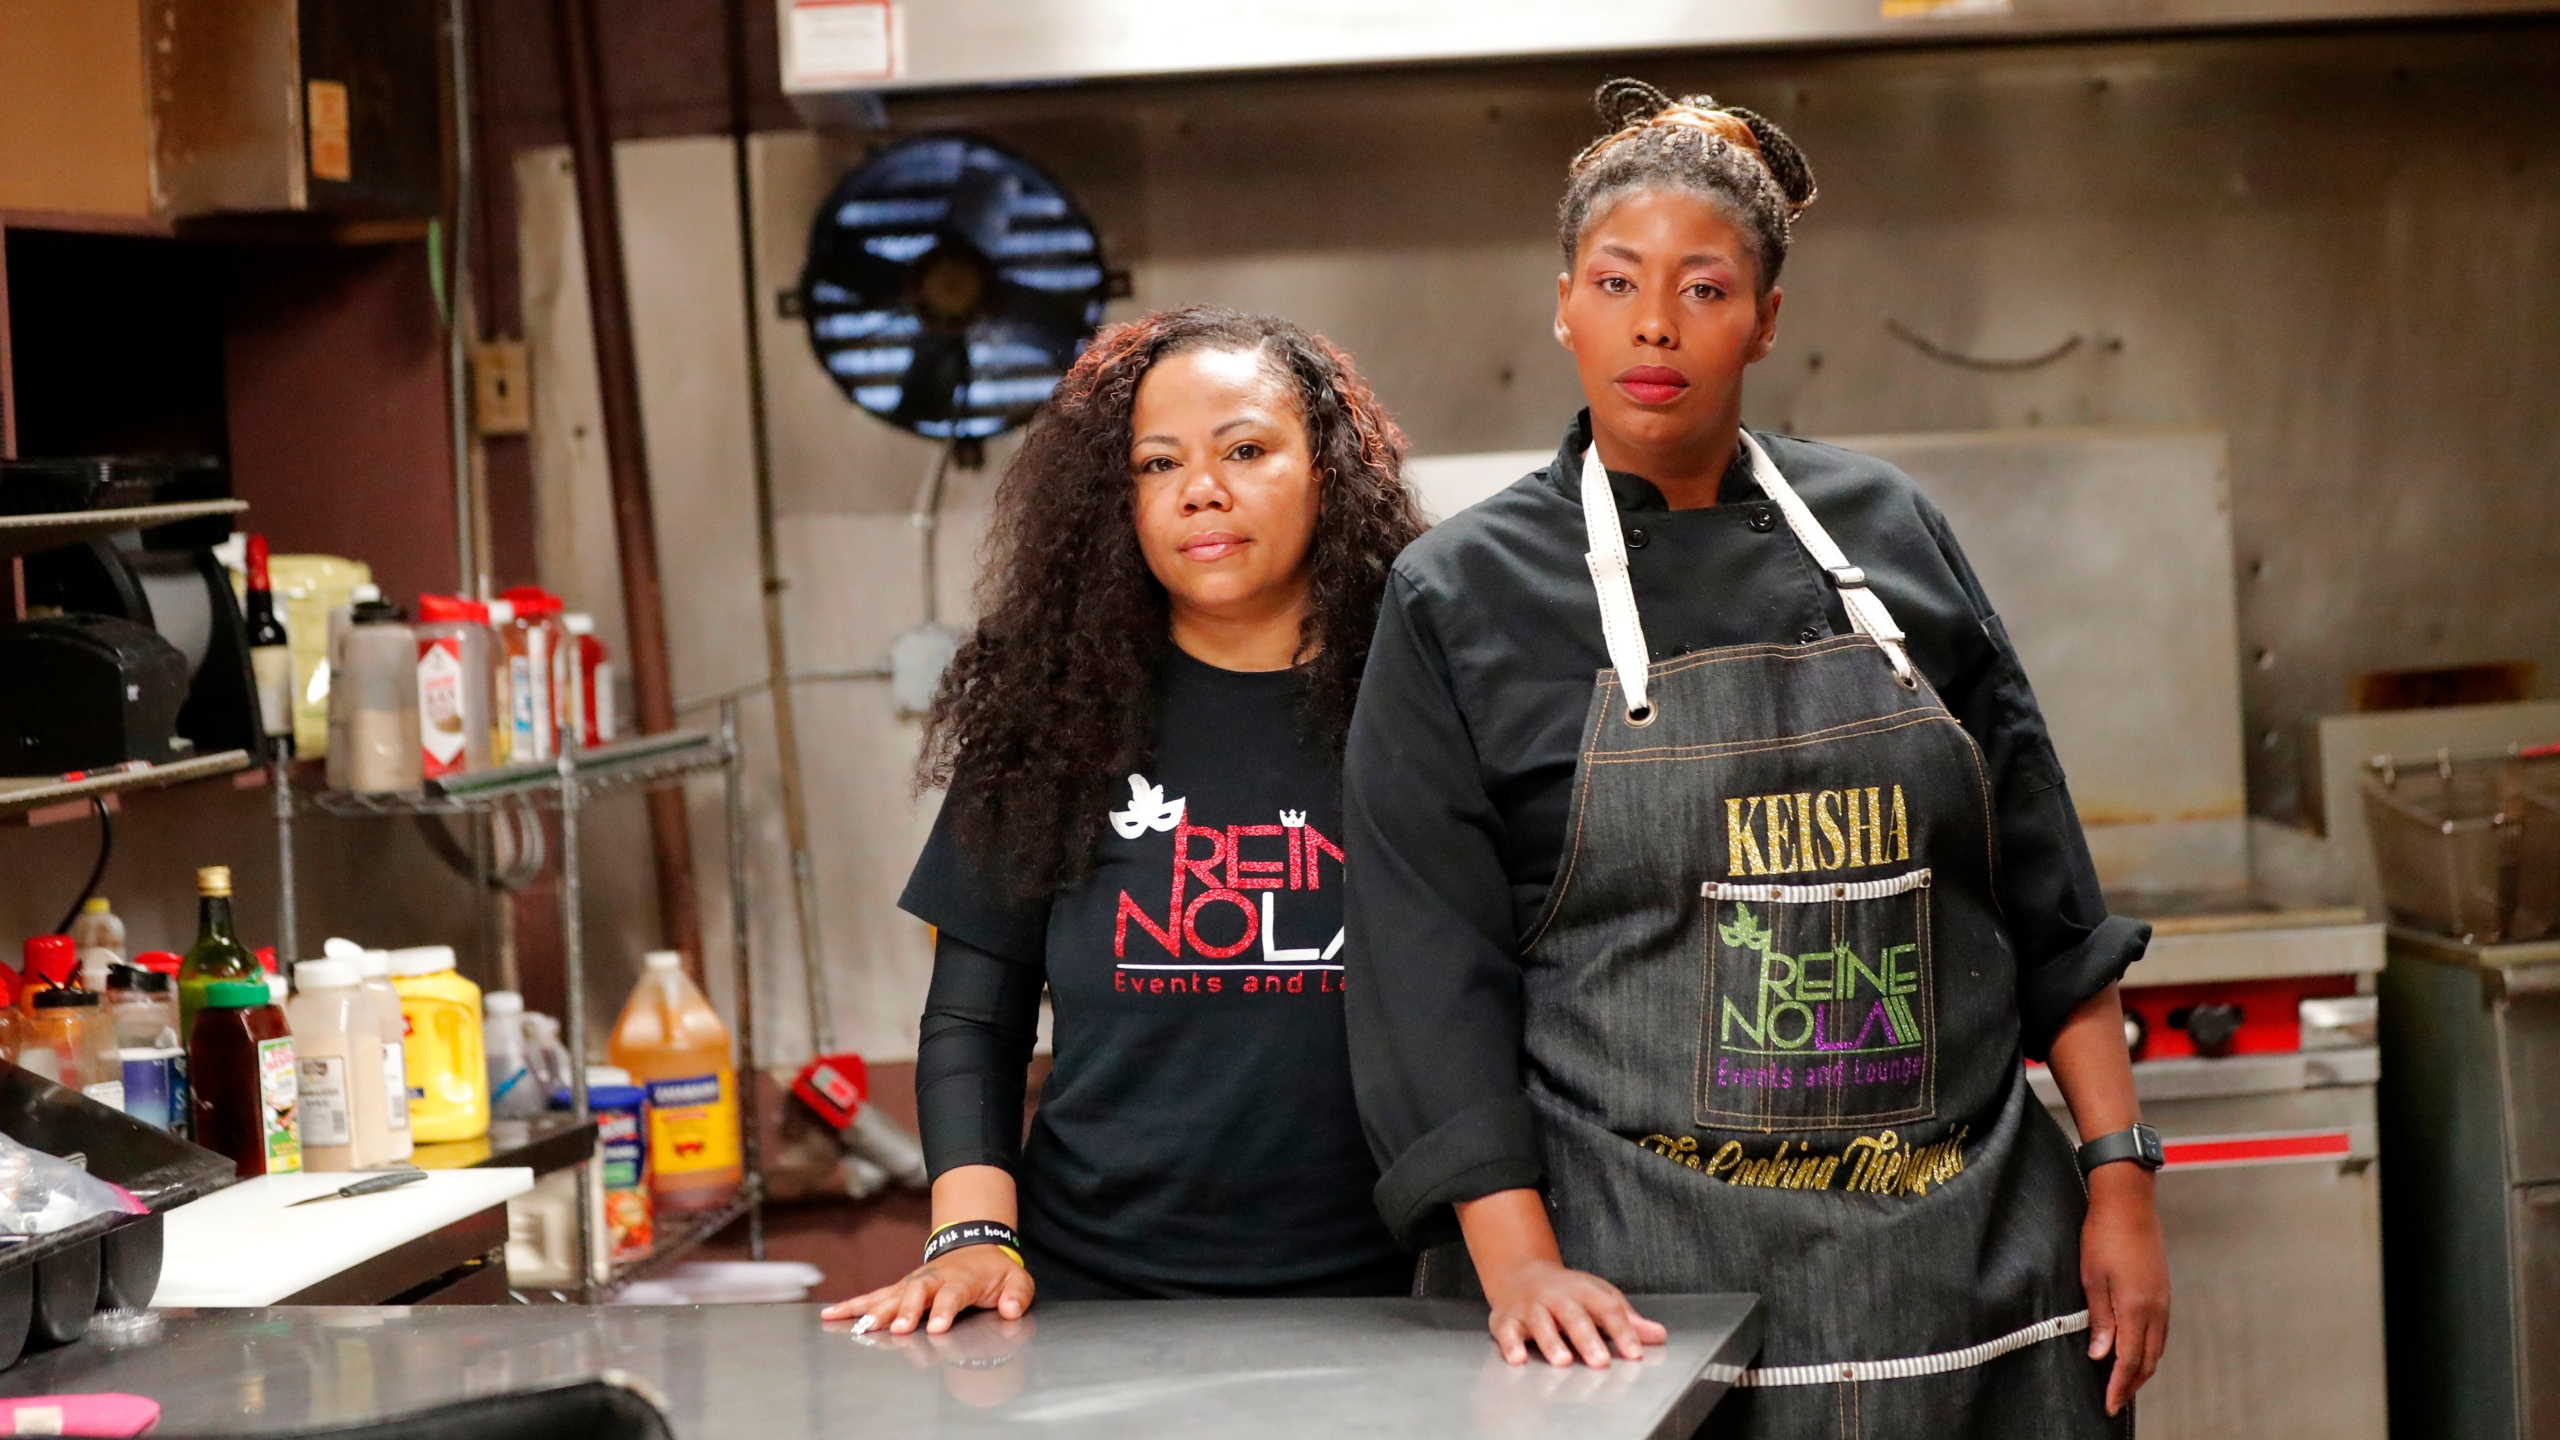 Keisha Henry, right, and her business partner Erica Norwood pose inside their lounge and catering business in New Orleans. Henry said she lost about $10,000 in revenue last week after three big functions she was slated to cater ended up canceling. Meanwhile, she still has expenses related to launching a bar and lounge six months ago. Henry said she regrettably had to lay off several employees. (AP Photo/Gerald Herbert)